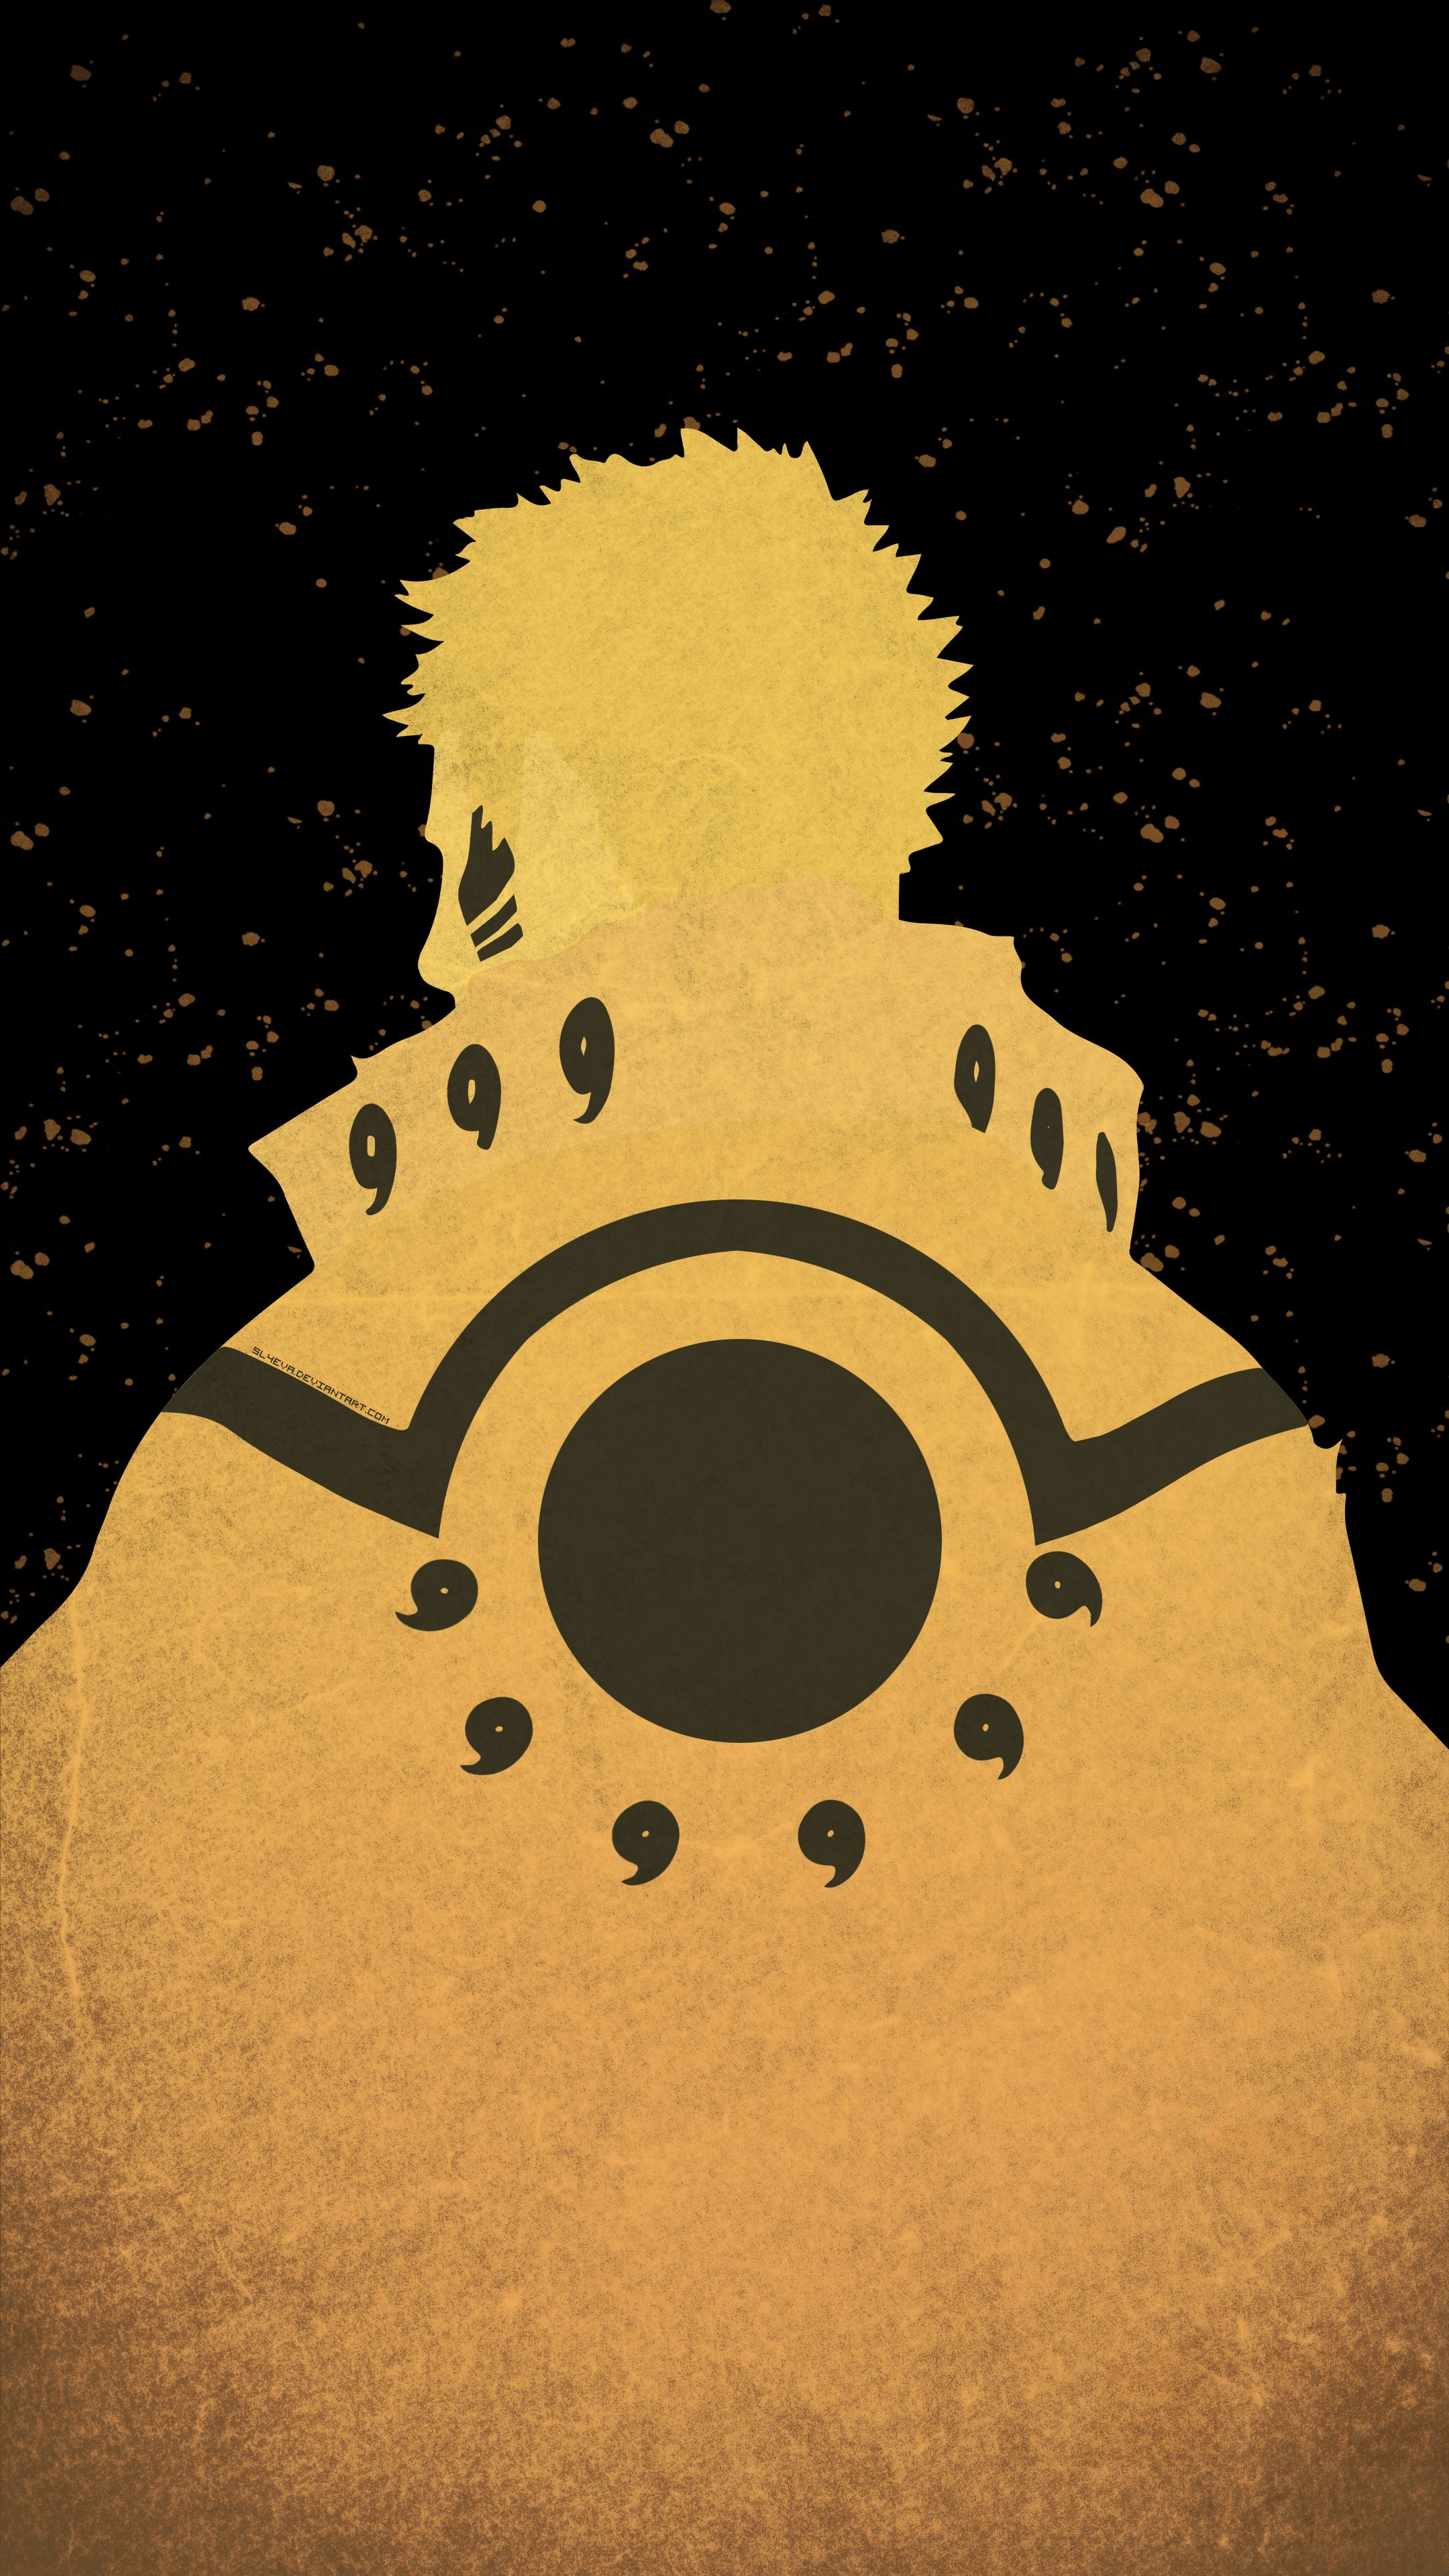 pc and mobile hd naruto wallpapers you need in your life | h